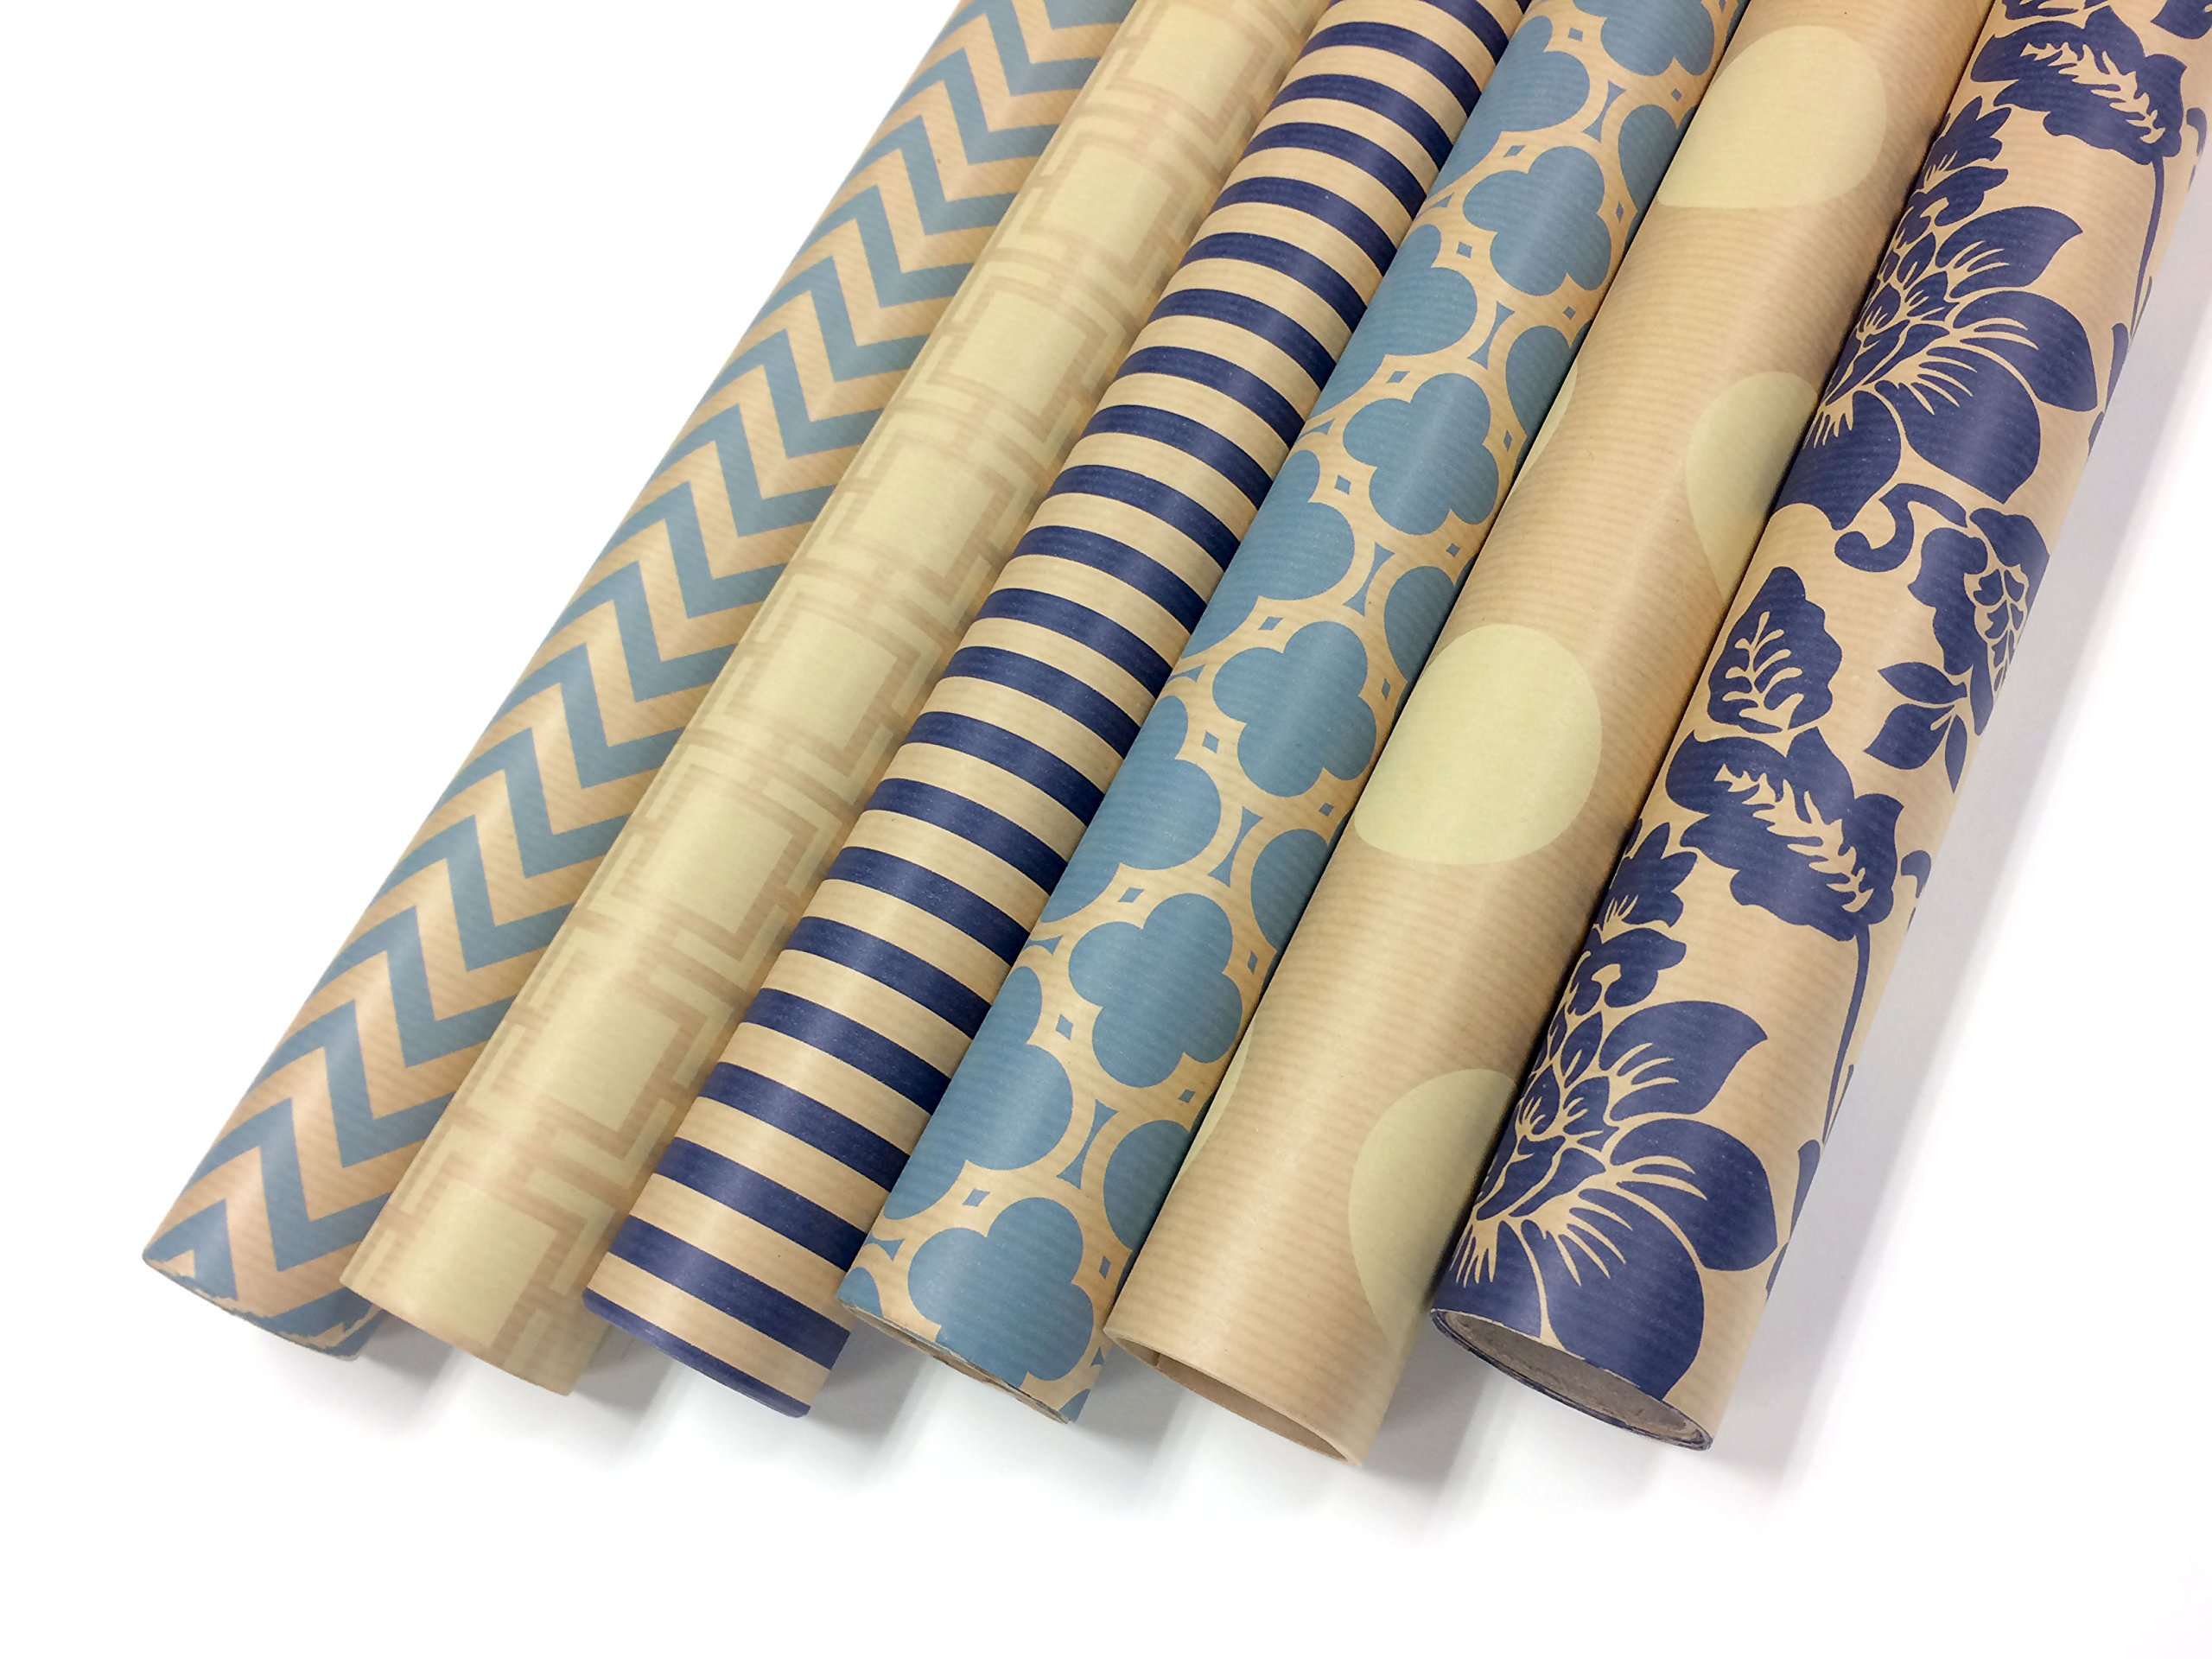 Kraft Blue and Cream Wrapping Paper Set - 6 Rolls - Multiple Patterns - 30'' x 120'' per Roll